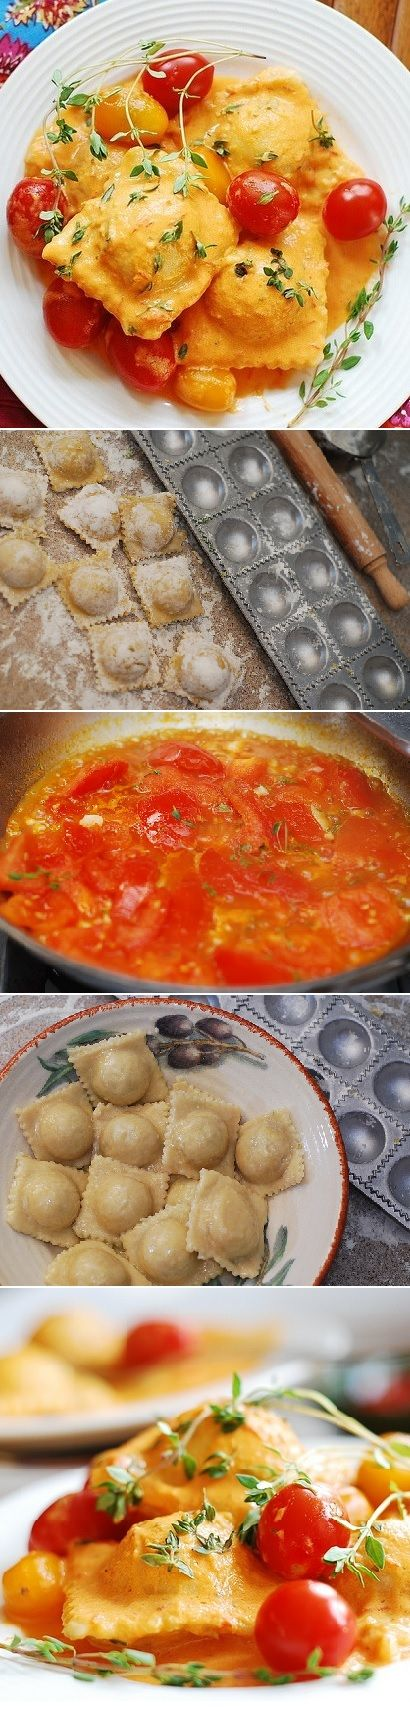 How to make ravioli from scratch, using a ravioli mold: with spinach and ricotta cheese filling, in homemade tomato cream sauce | JuliasAlbum.com | #Italian_recipes #Italian_ravioli #Italian_pasta